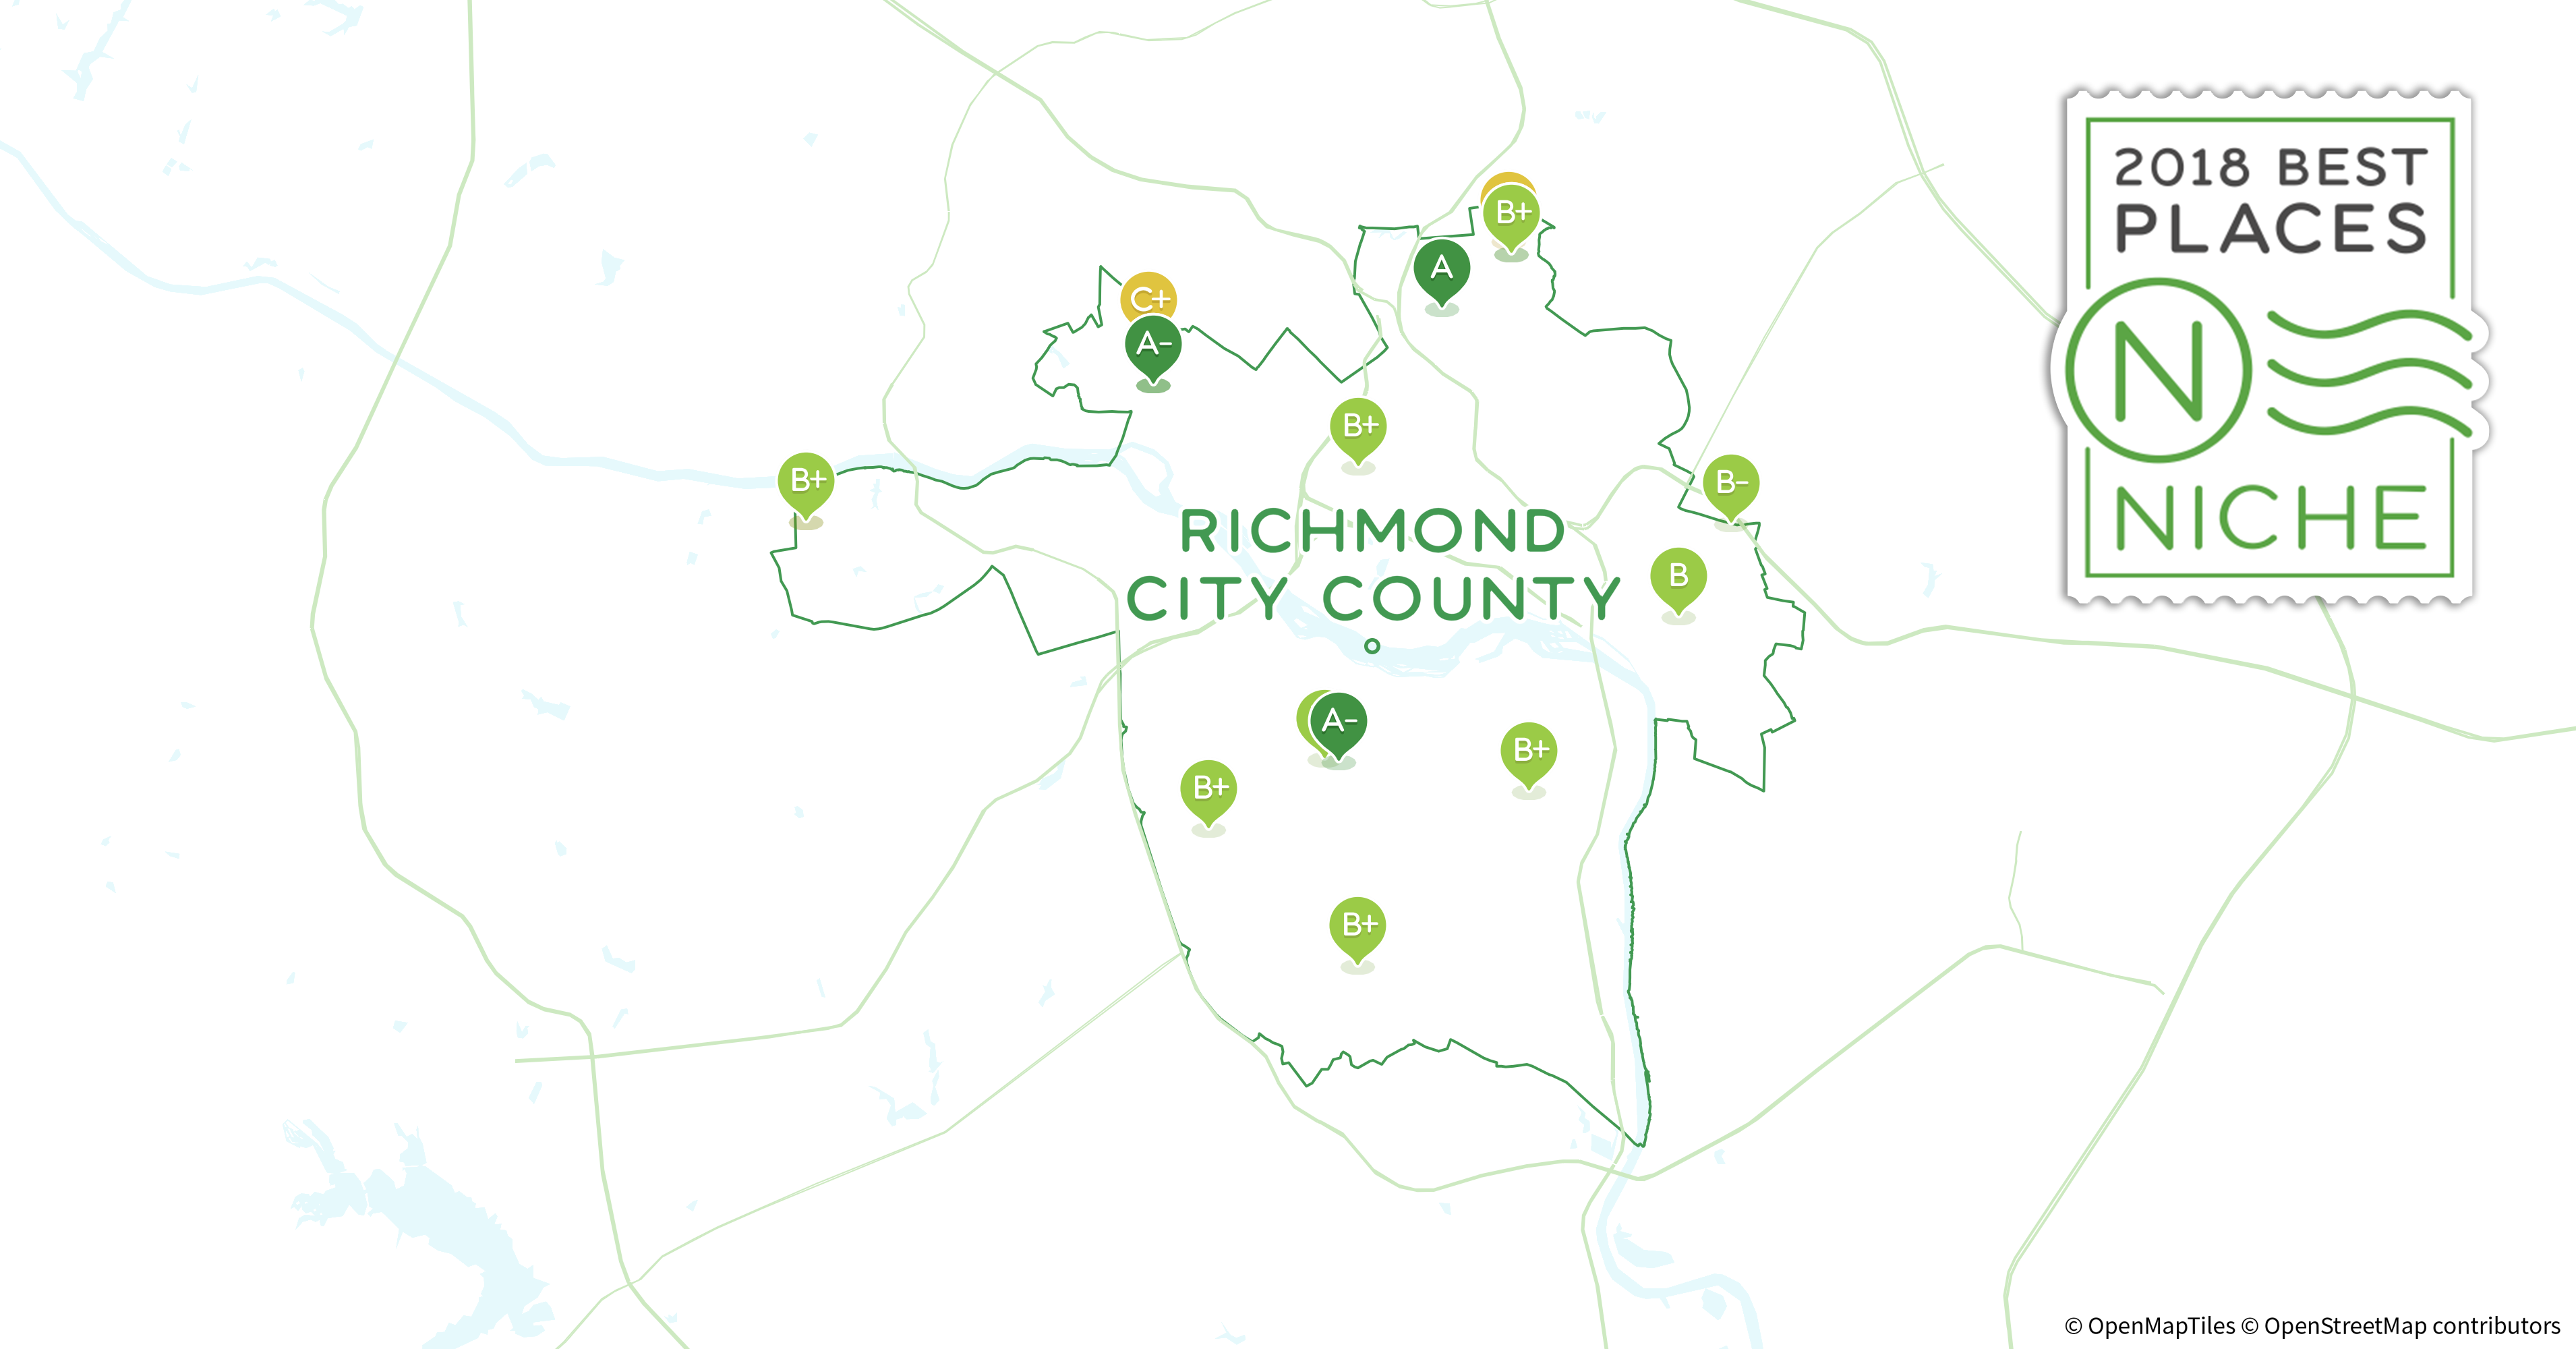 Explore the best places to live in Richmond City County